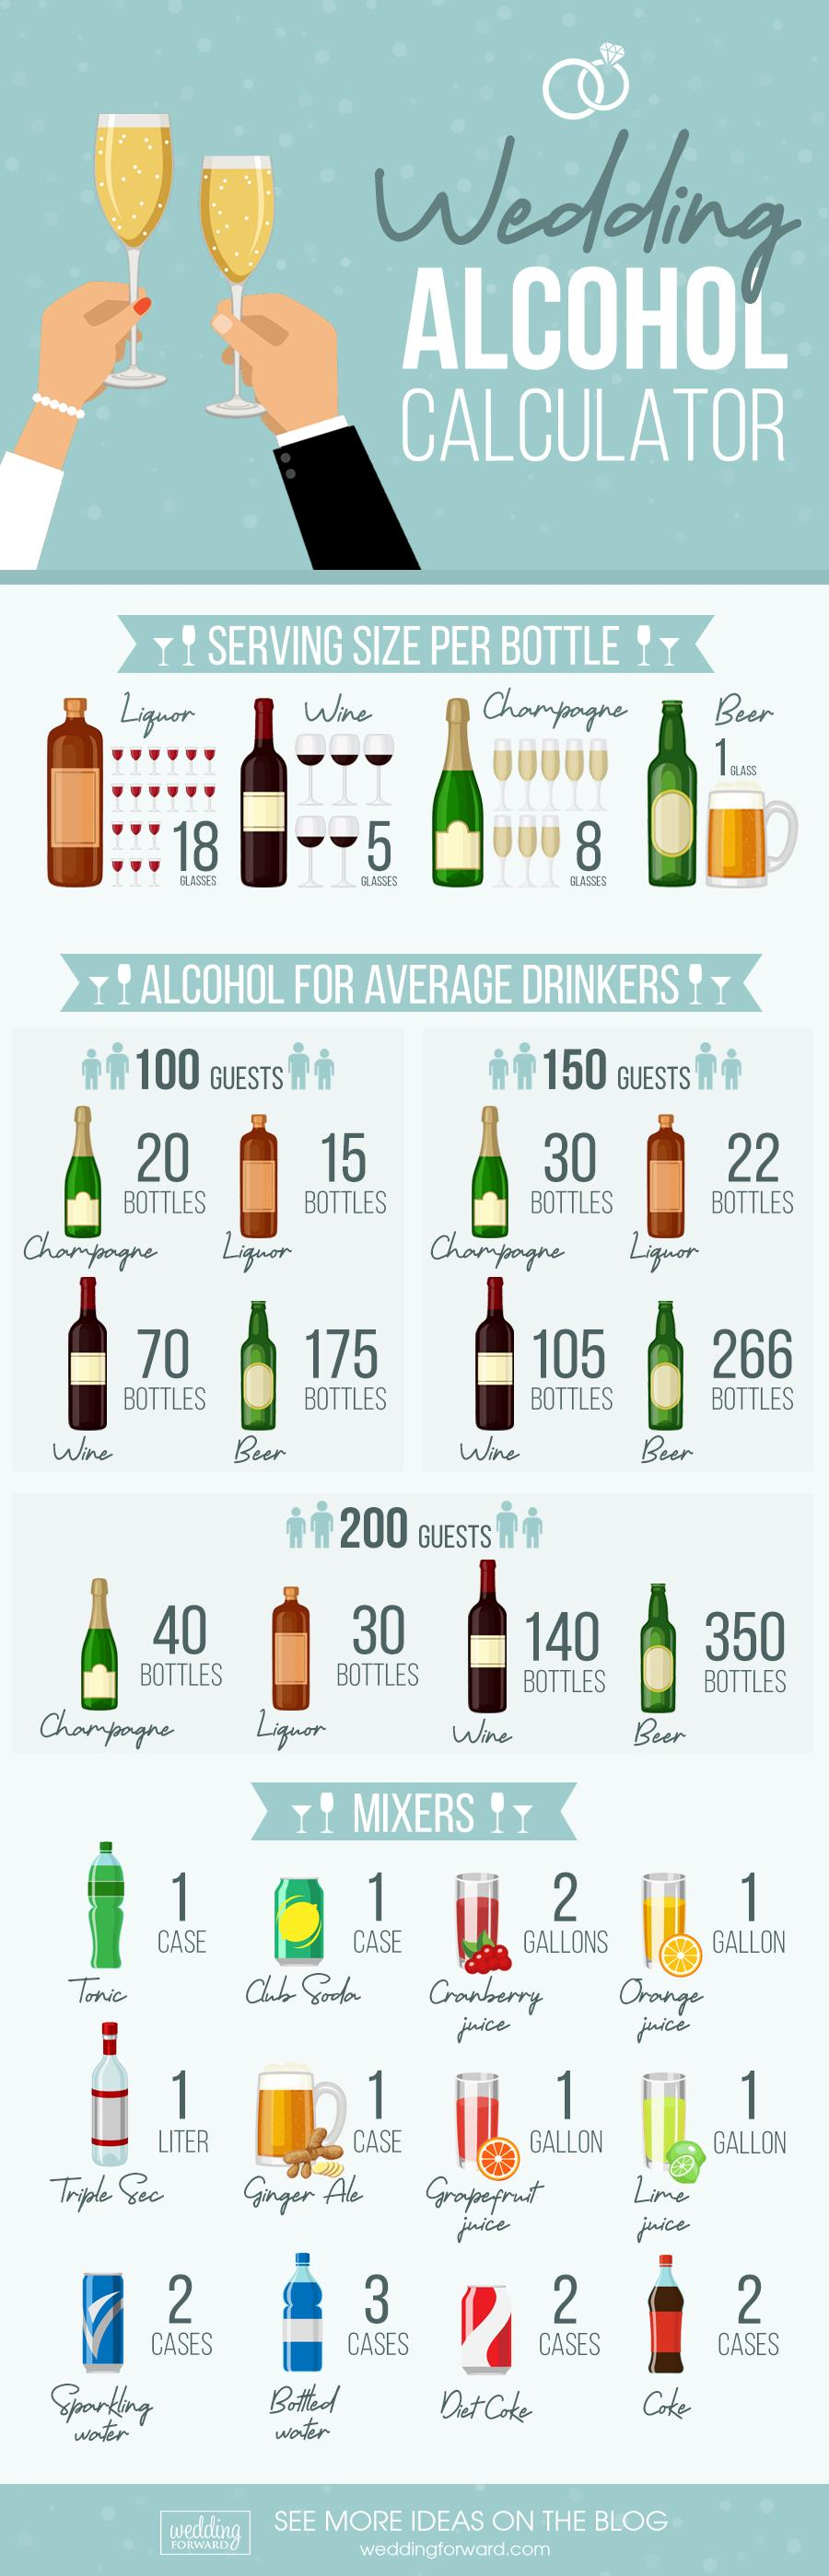 wedding alcohol calculator infographic